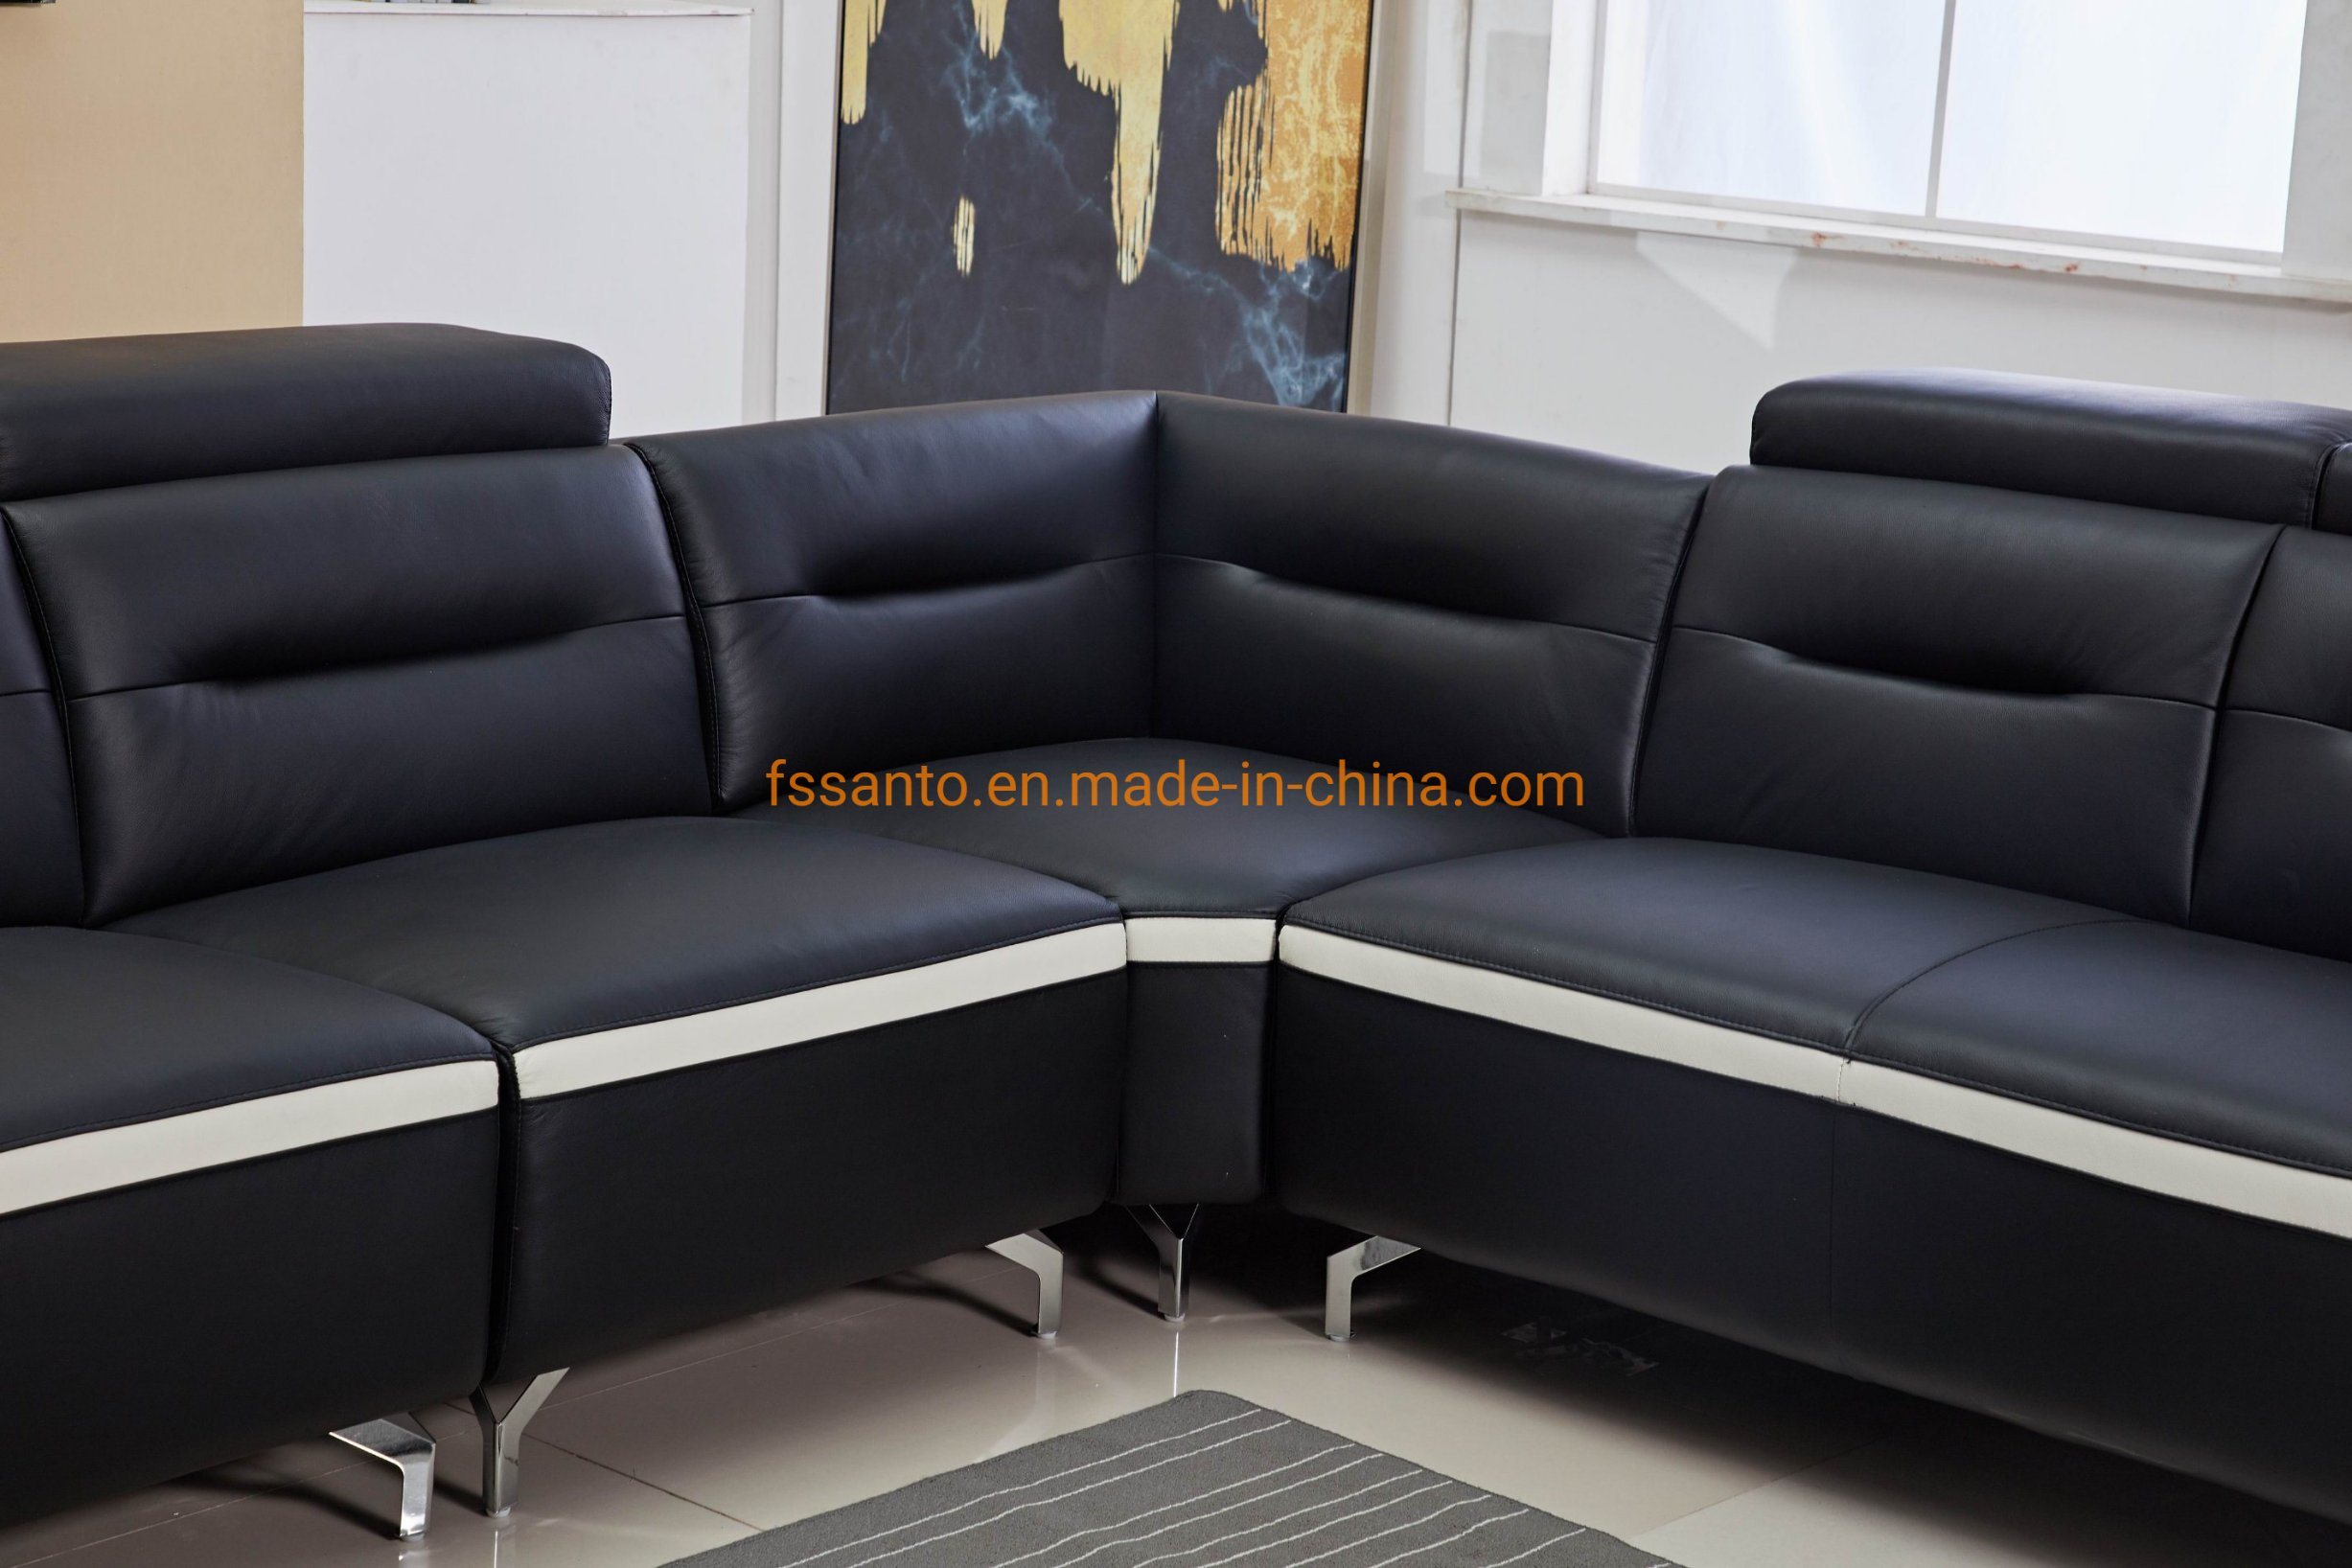 China Modern Fashion Sectional Sofa Set Corner Style Leather